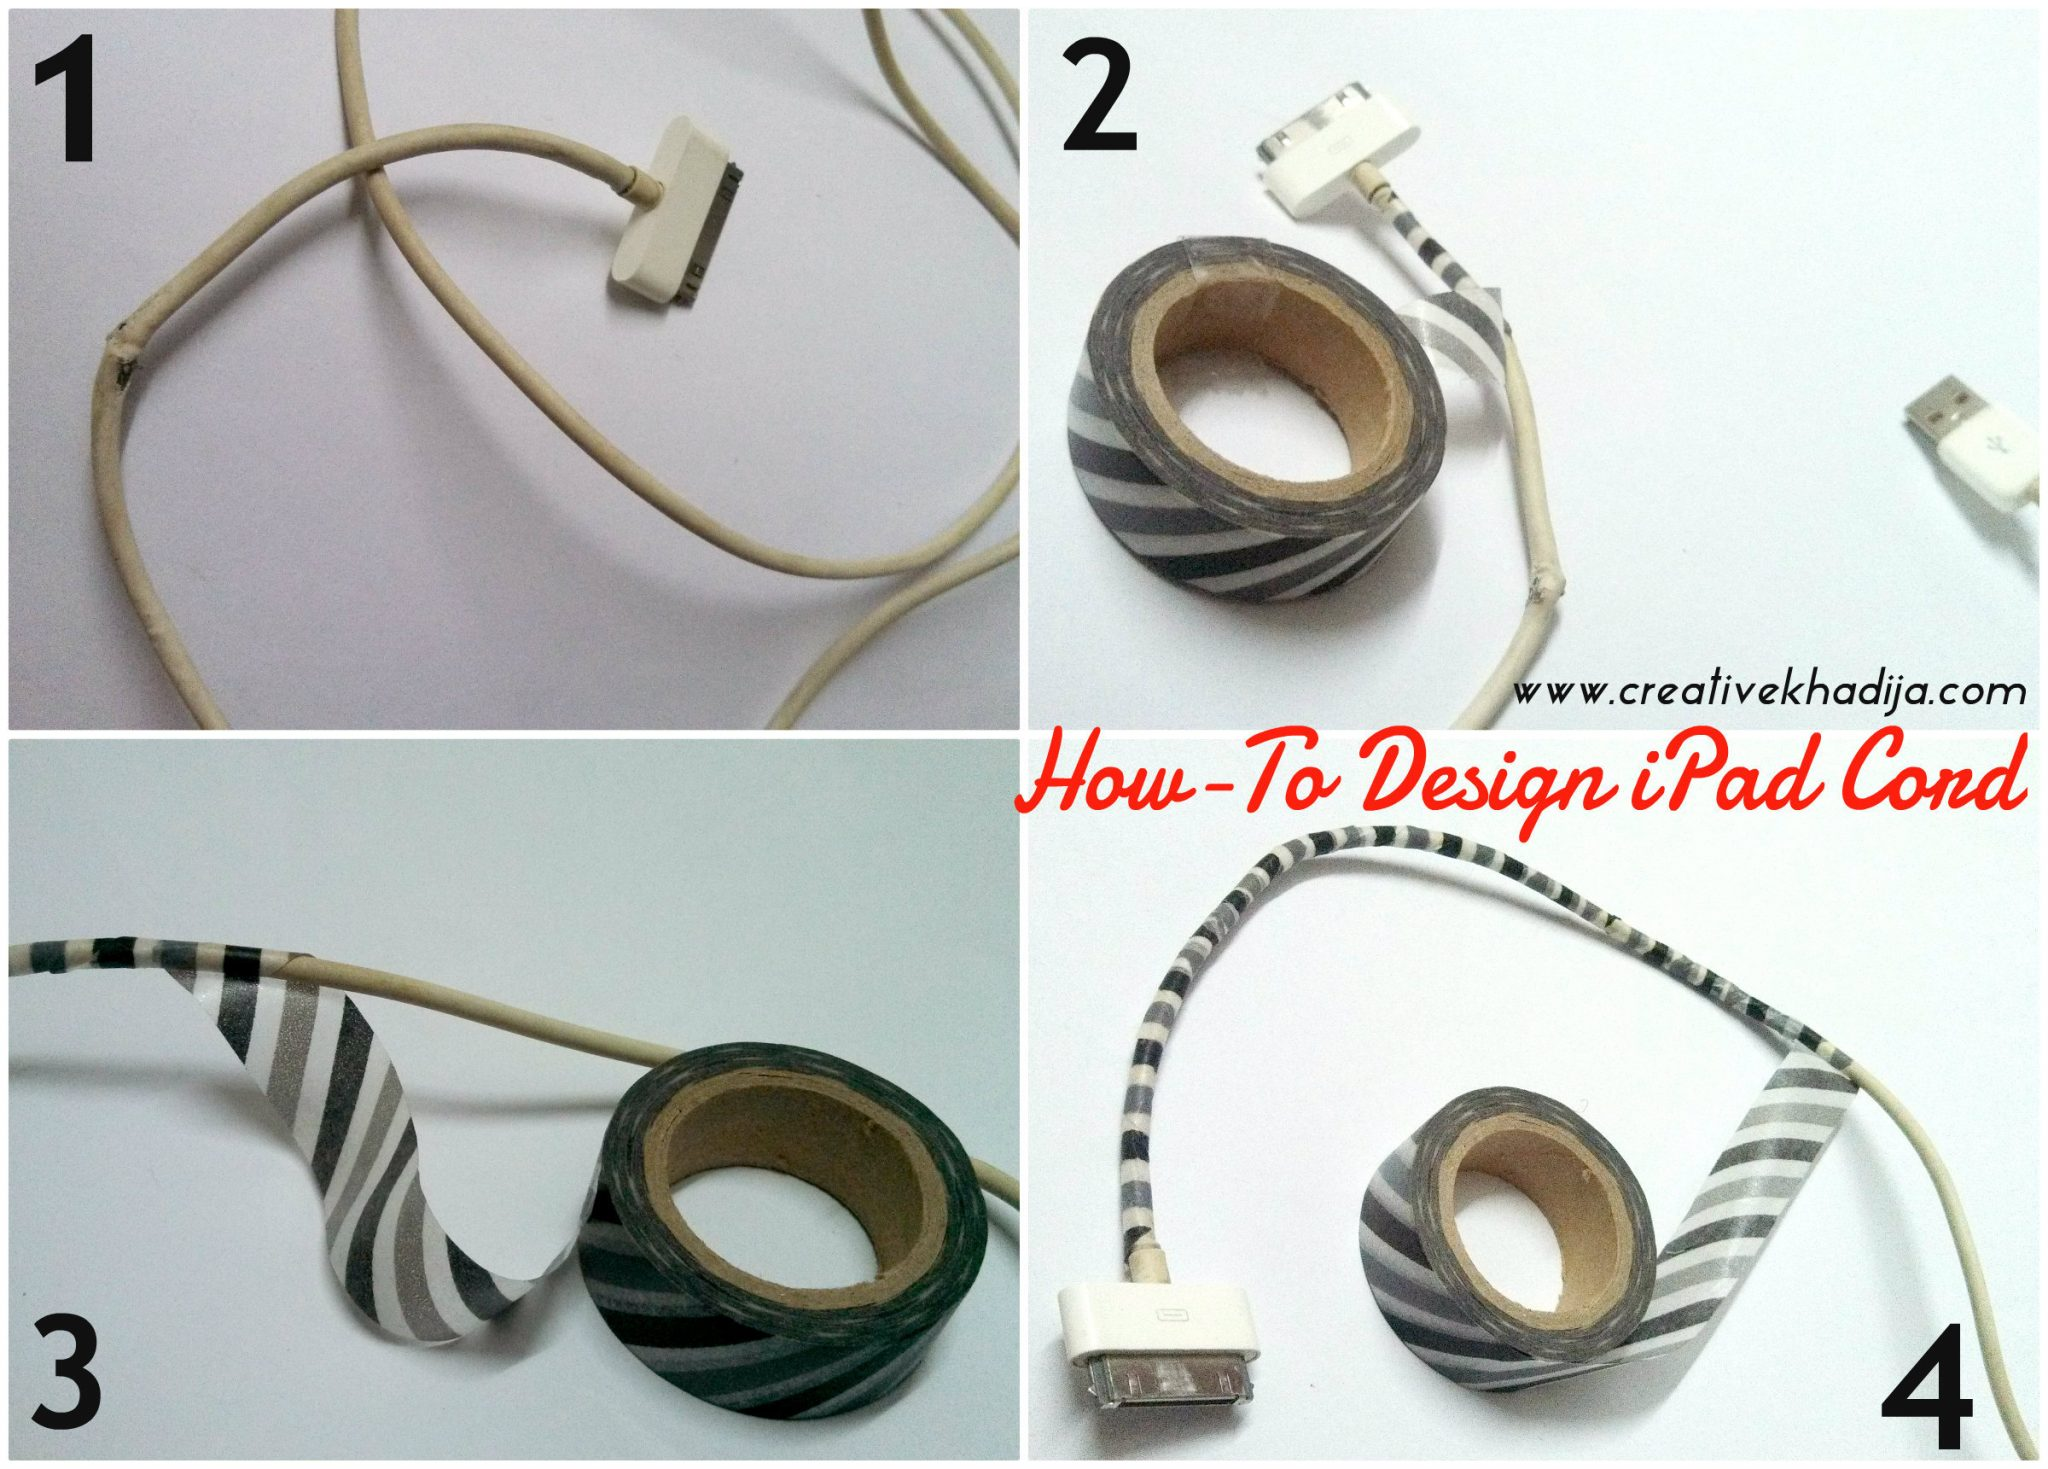 how-to cover iphone cord-cable